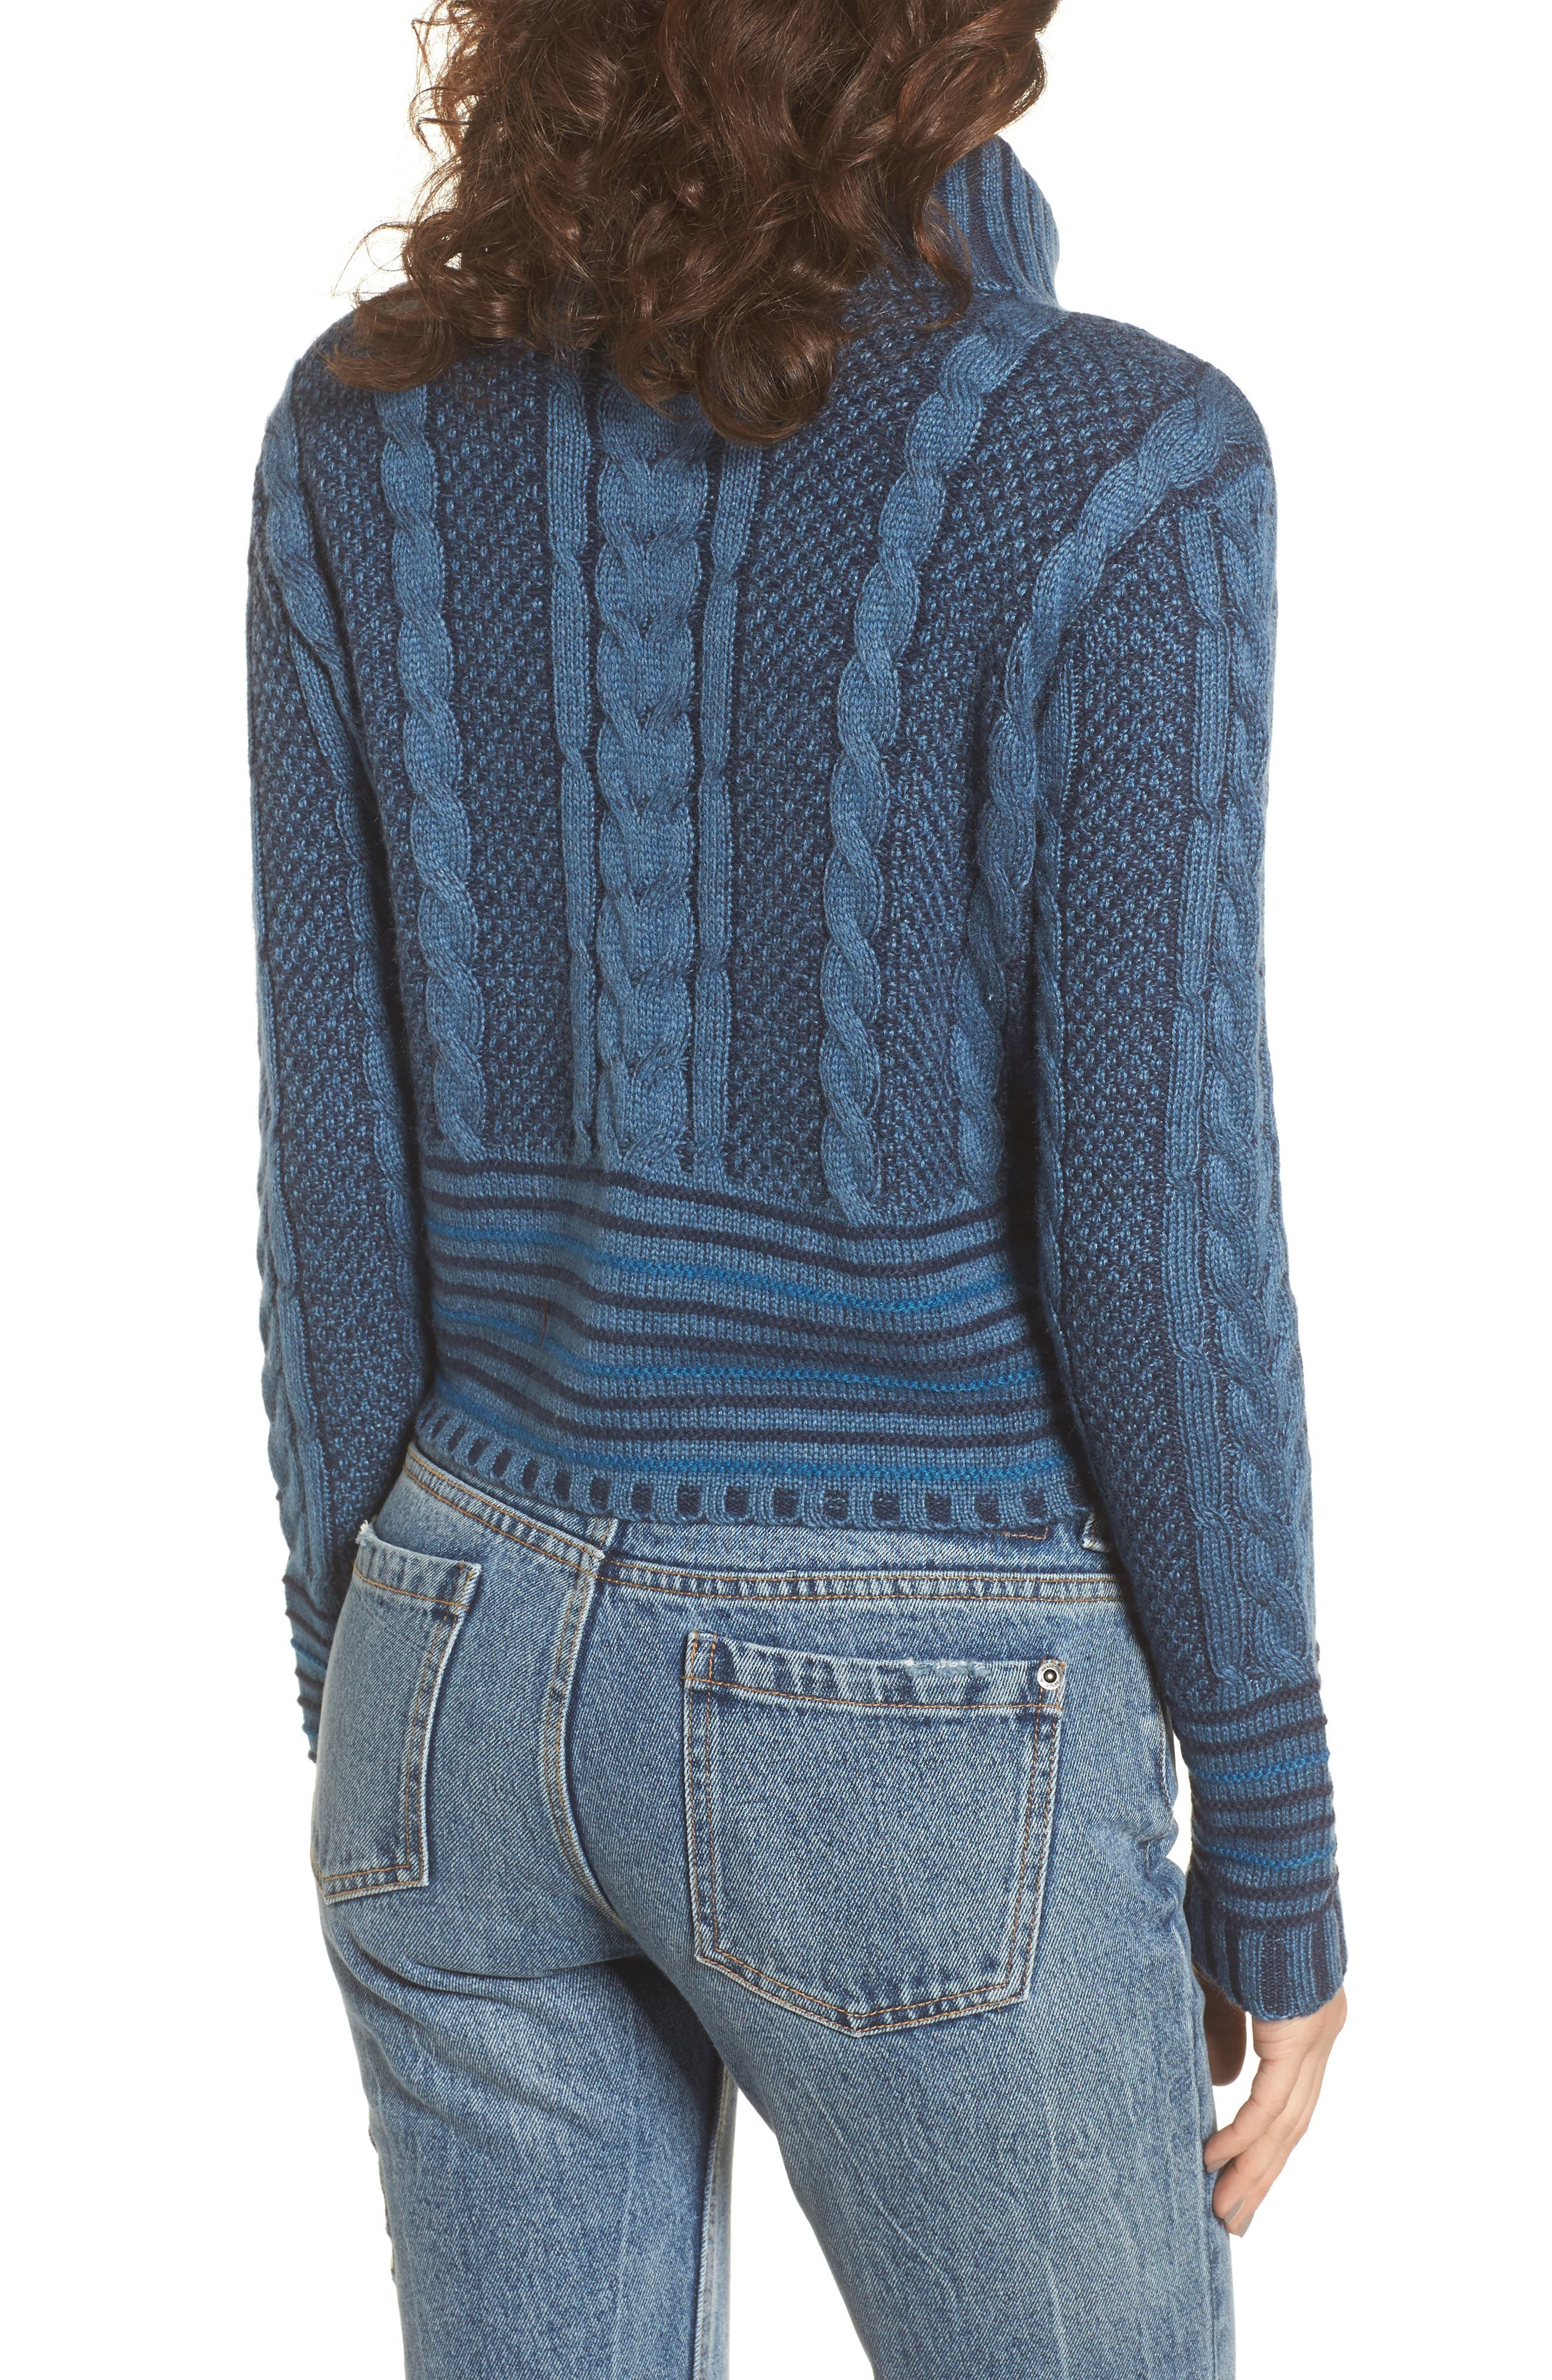 Mix Up Knit Sweater,                             Alternate thumbnail 2, color,                             400